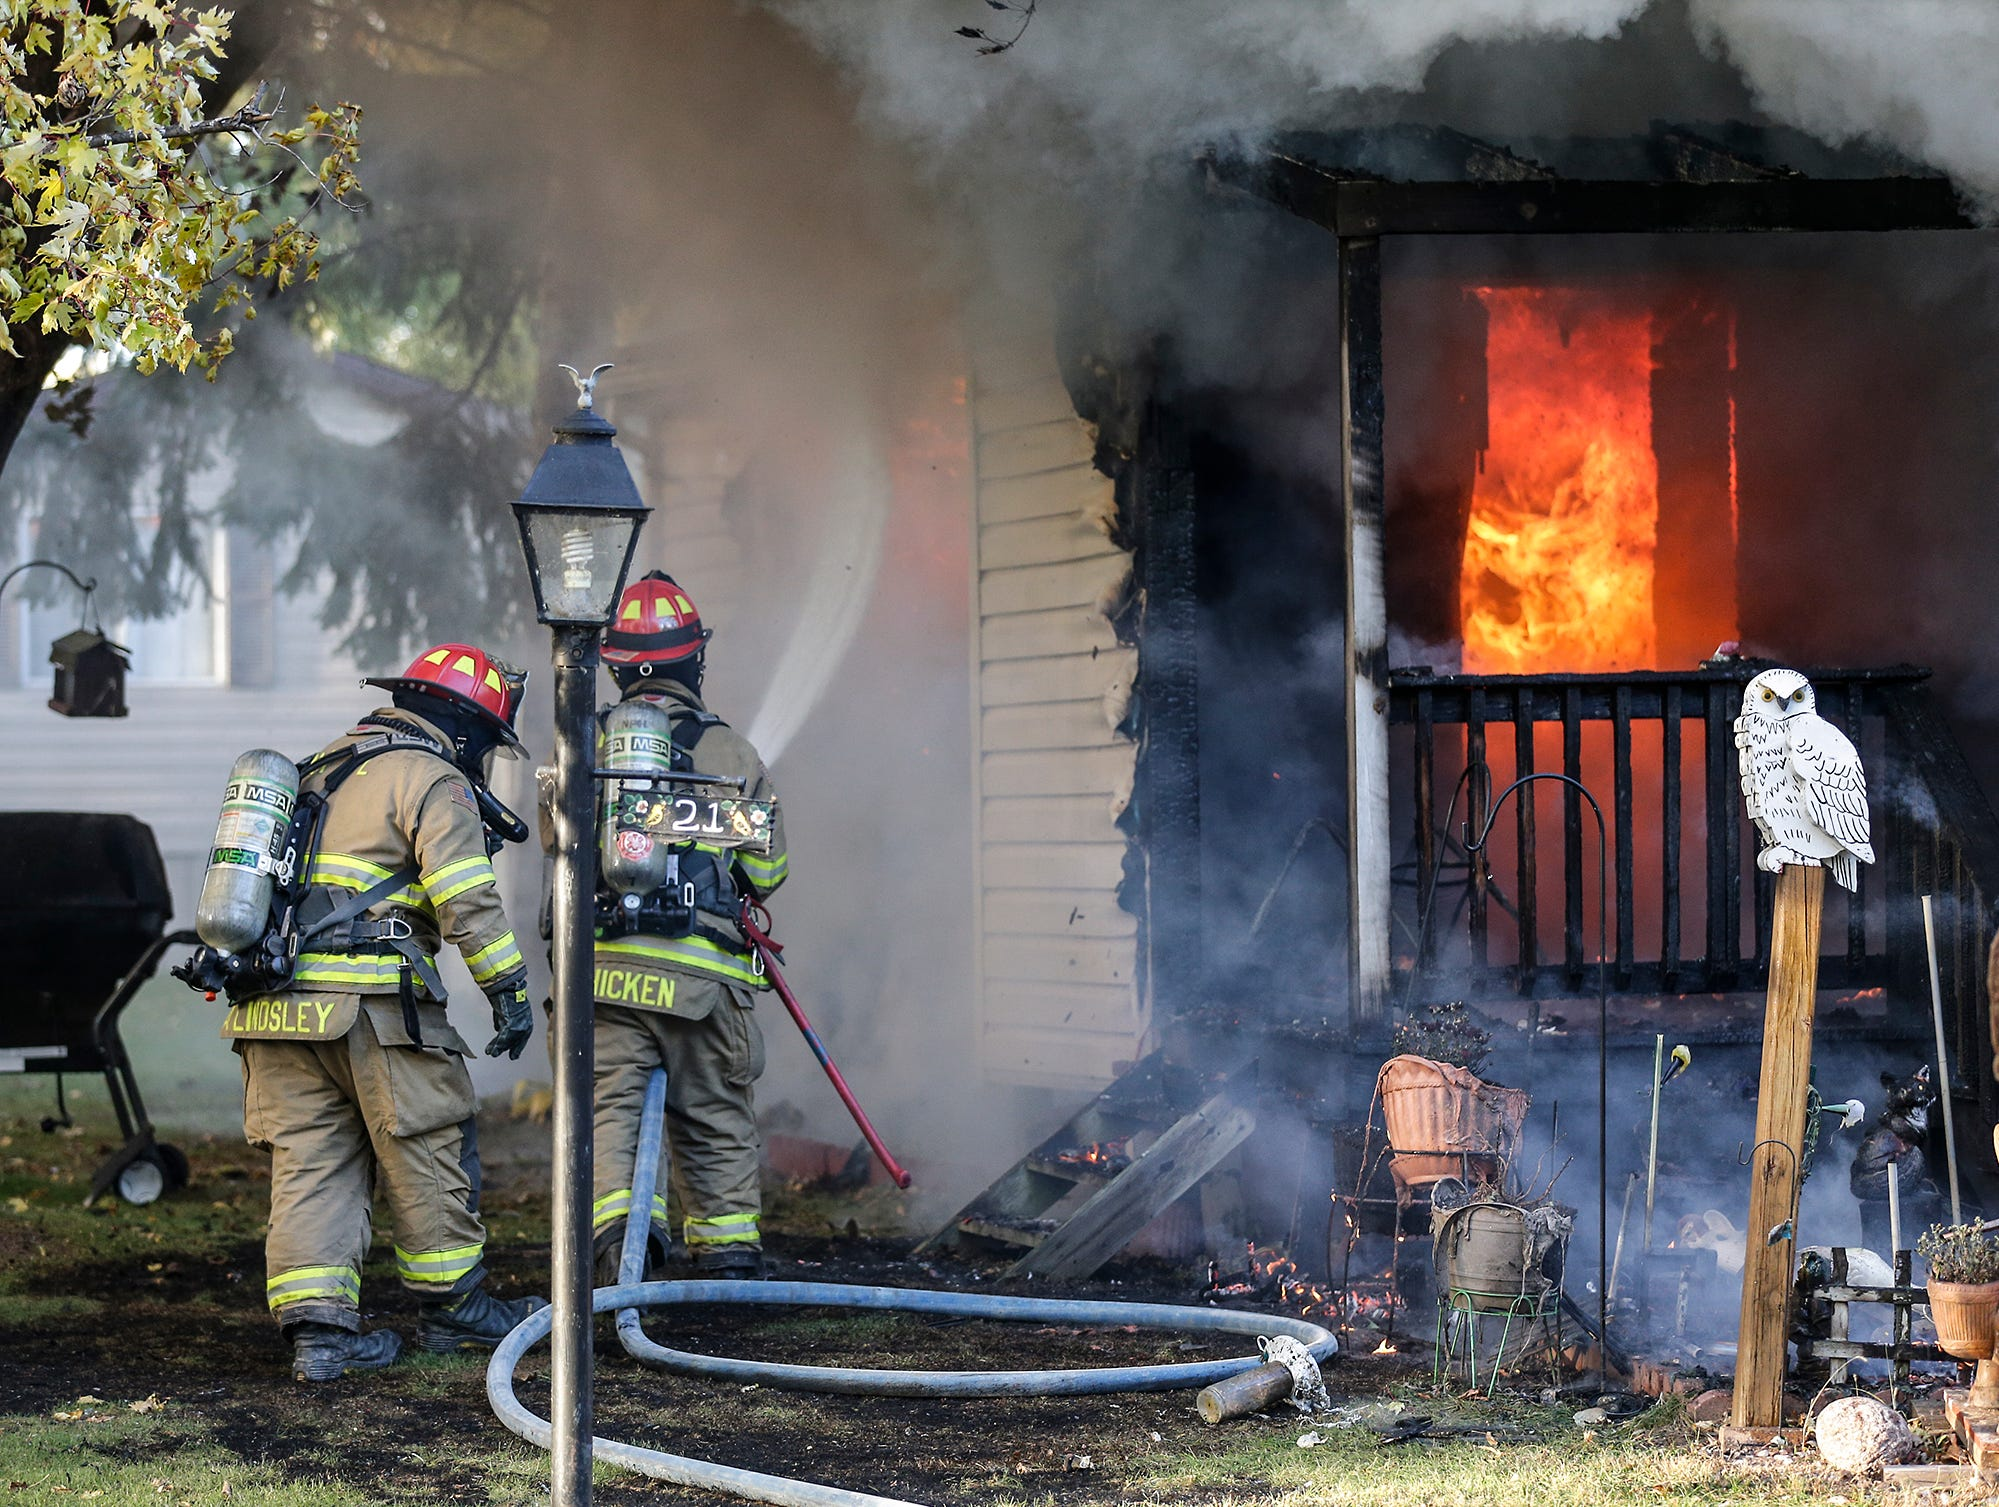 Fire departments from multiple agencies battle a mobile home fire Tuesday, October 23, 2018 at 21 Gaslight Drive in the Gaslight Terrace mobile home park in North Fond du Lac, Wisconsin. Doug Raflik/USA TODAY NETWORK-Wisconsin